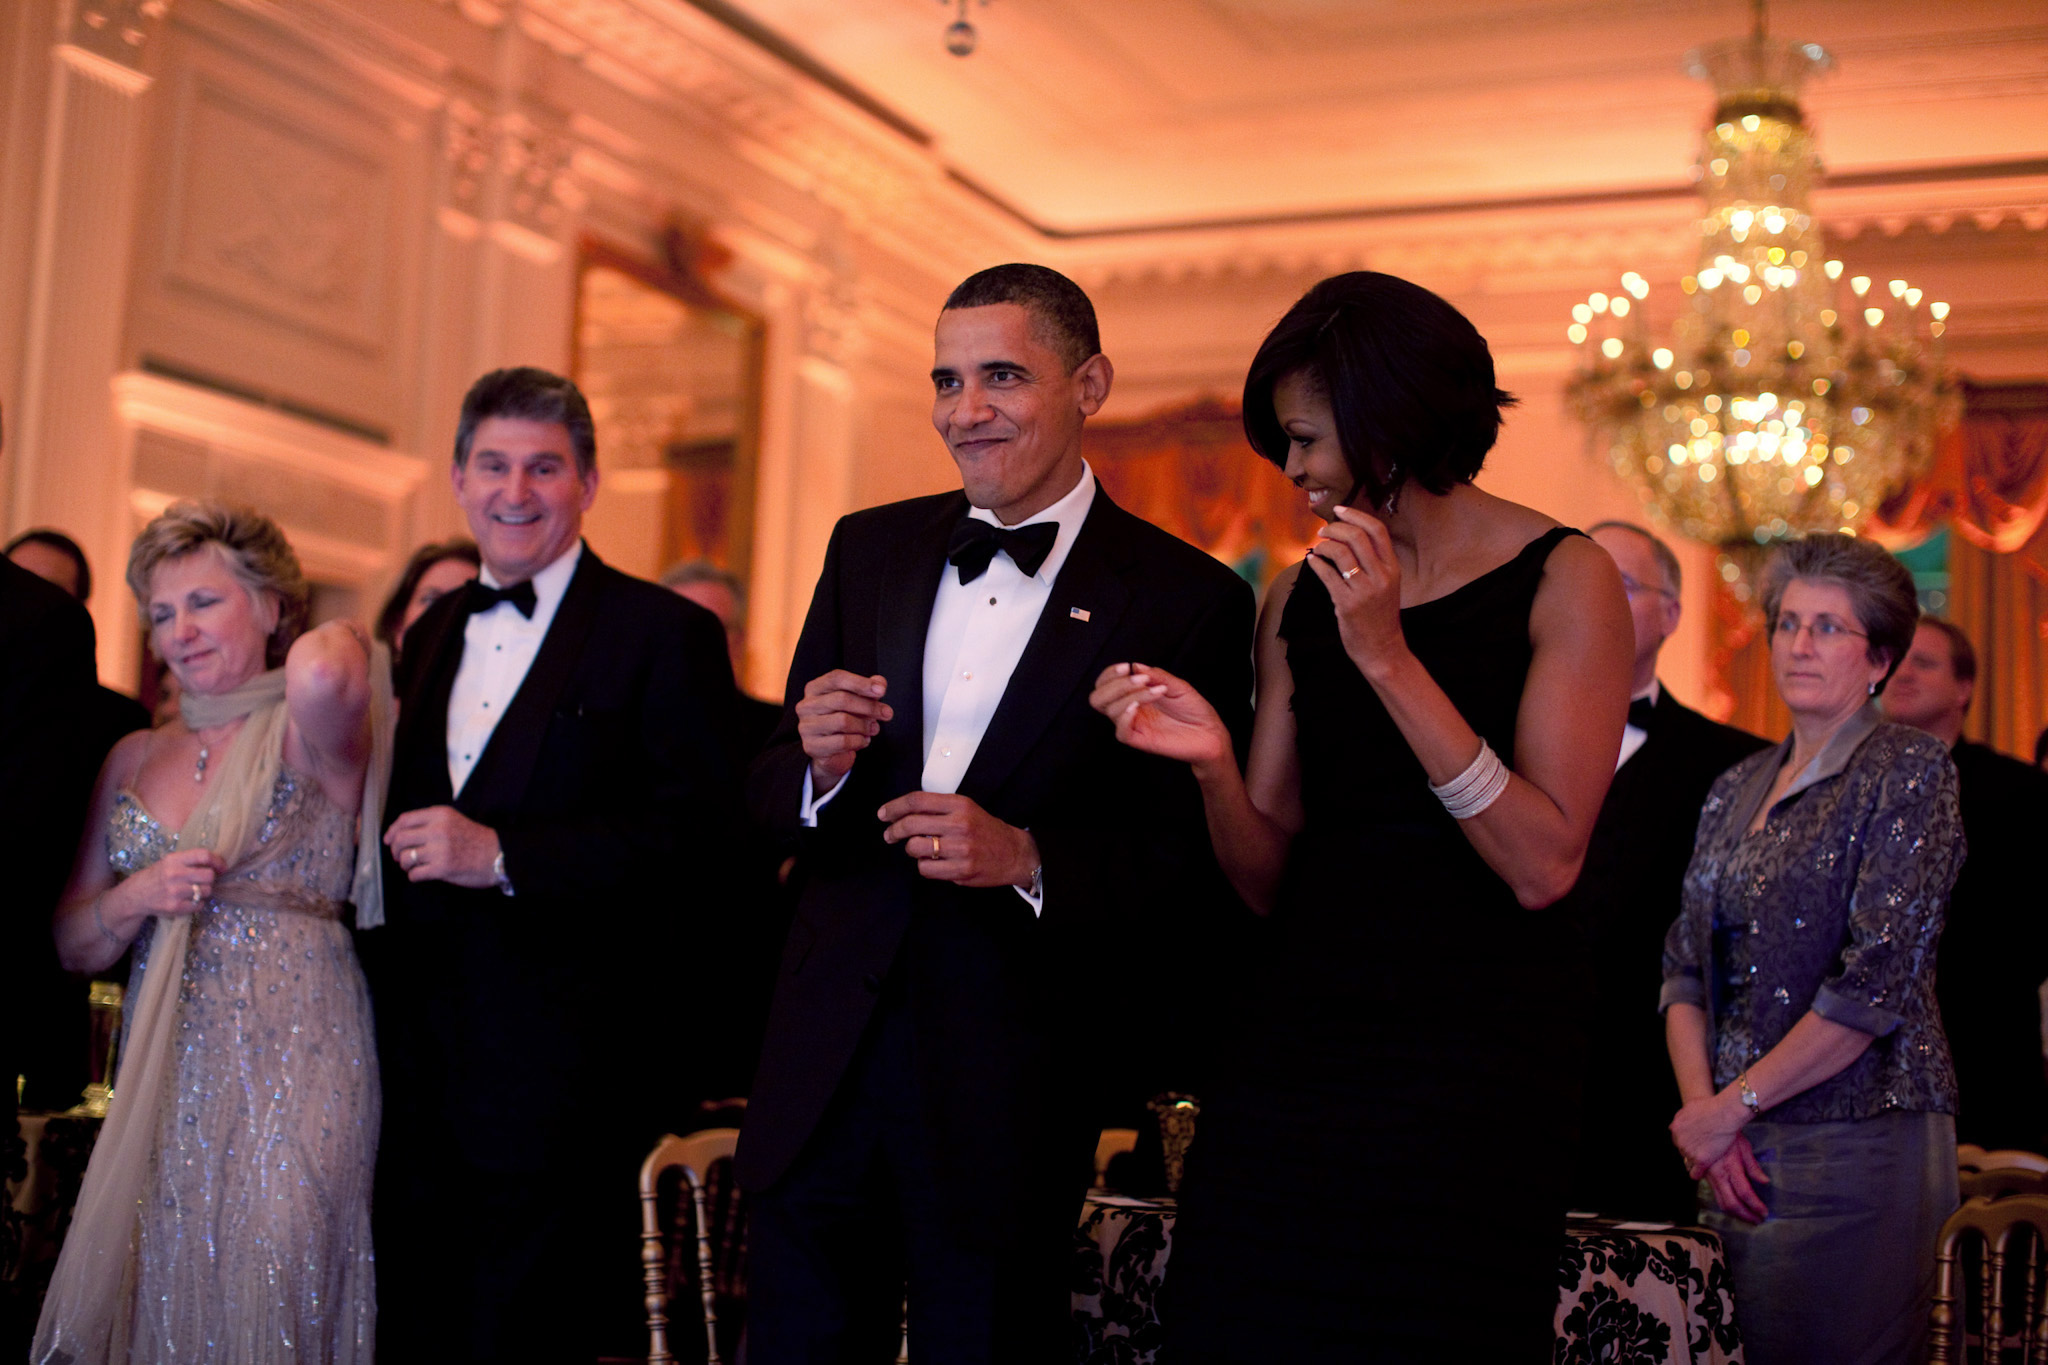 michelle and barack dancing together